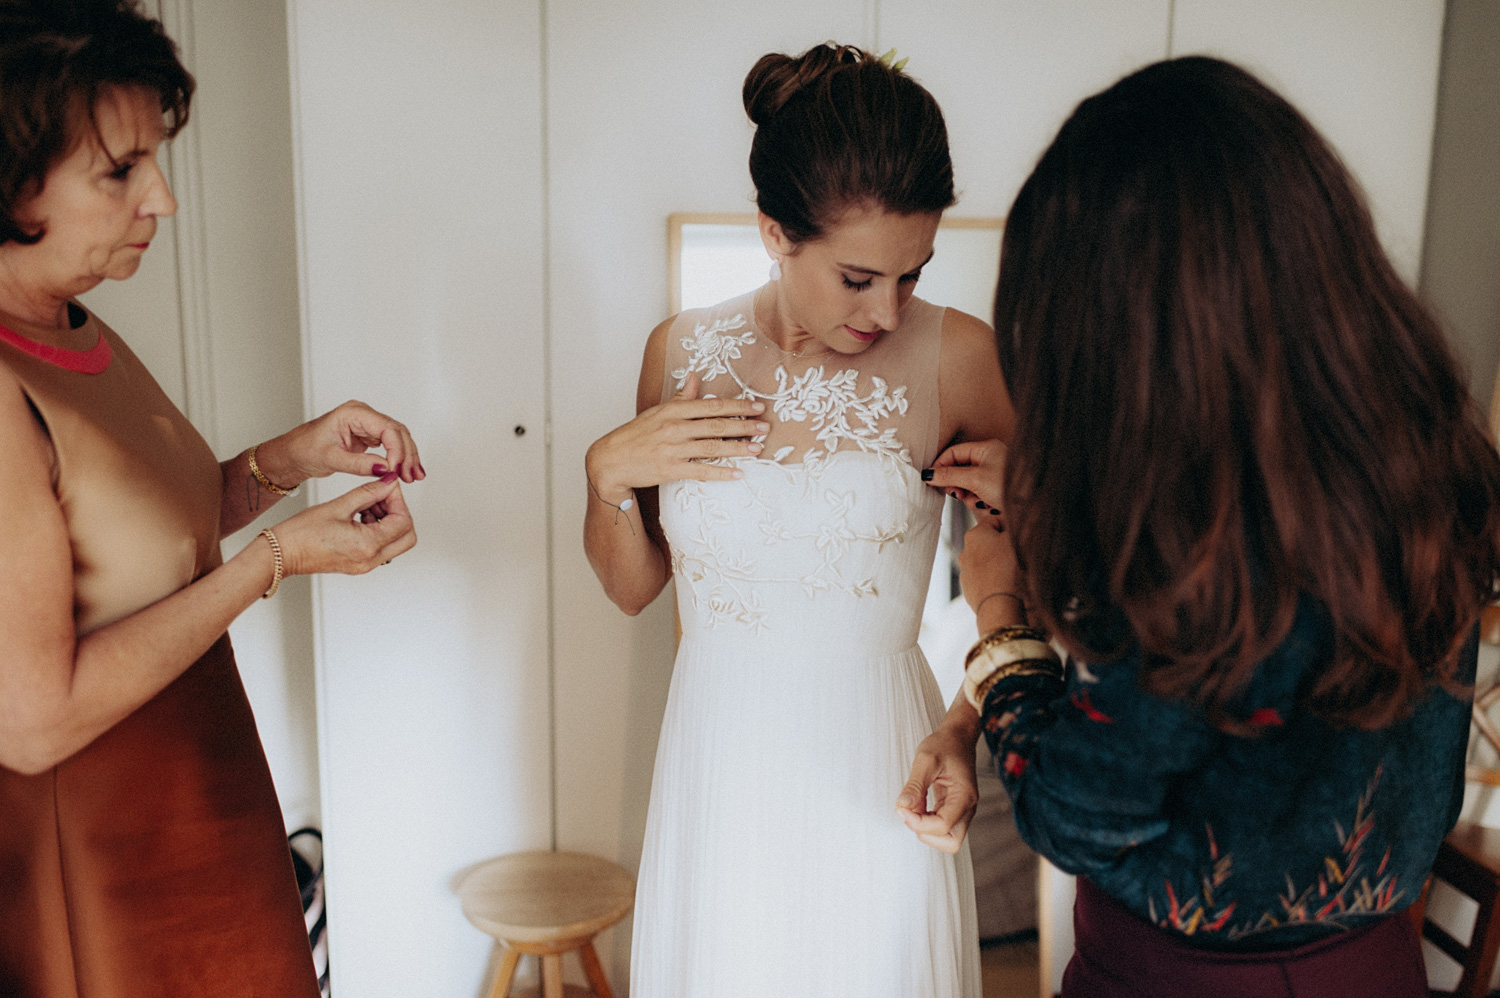 Bride with her mother and best friend putting on wedding dress